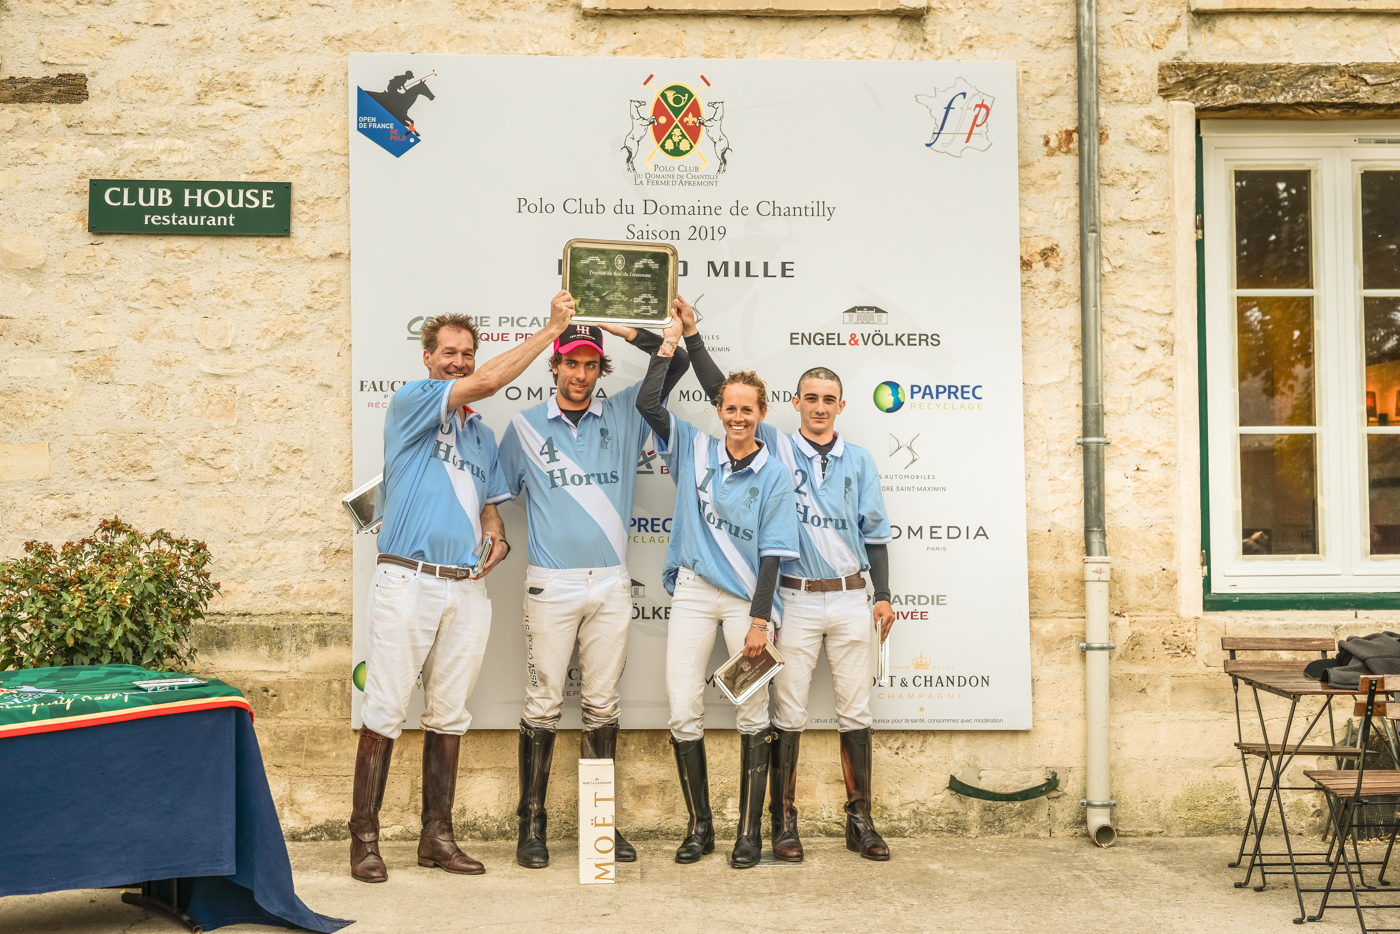 Congratulations to Horus the wining team of The Trophée du Bois du Lieutenant with Mario Sander and Naomi Schröder two German players playing with Simon Zavaleta and Francisco Aguerre from Argentina 🇦🇷 MVP Simon ZAVALETA